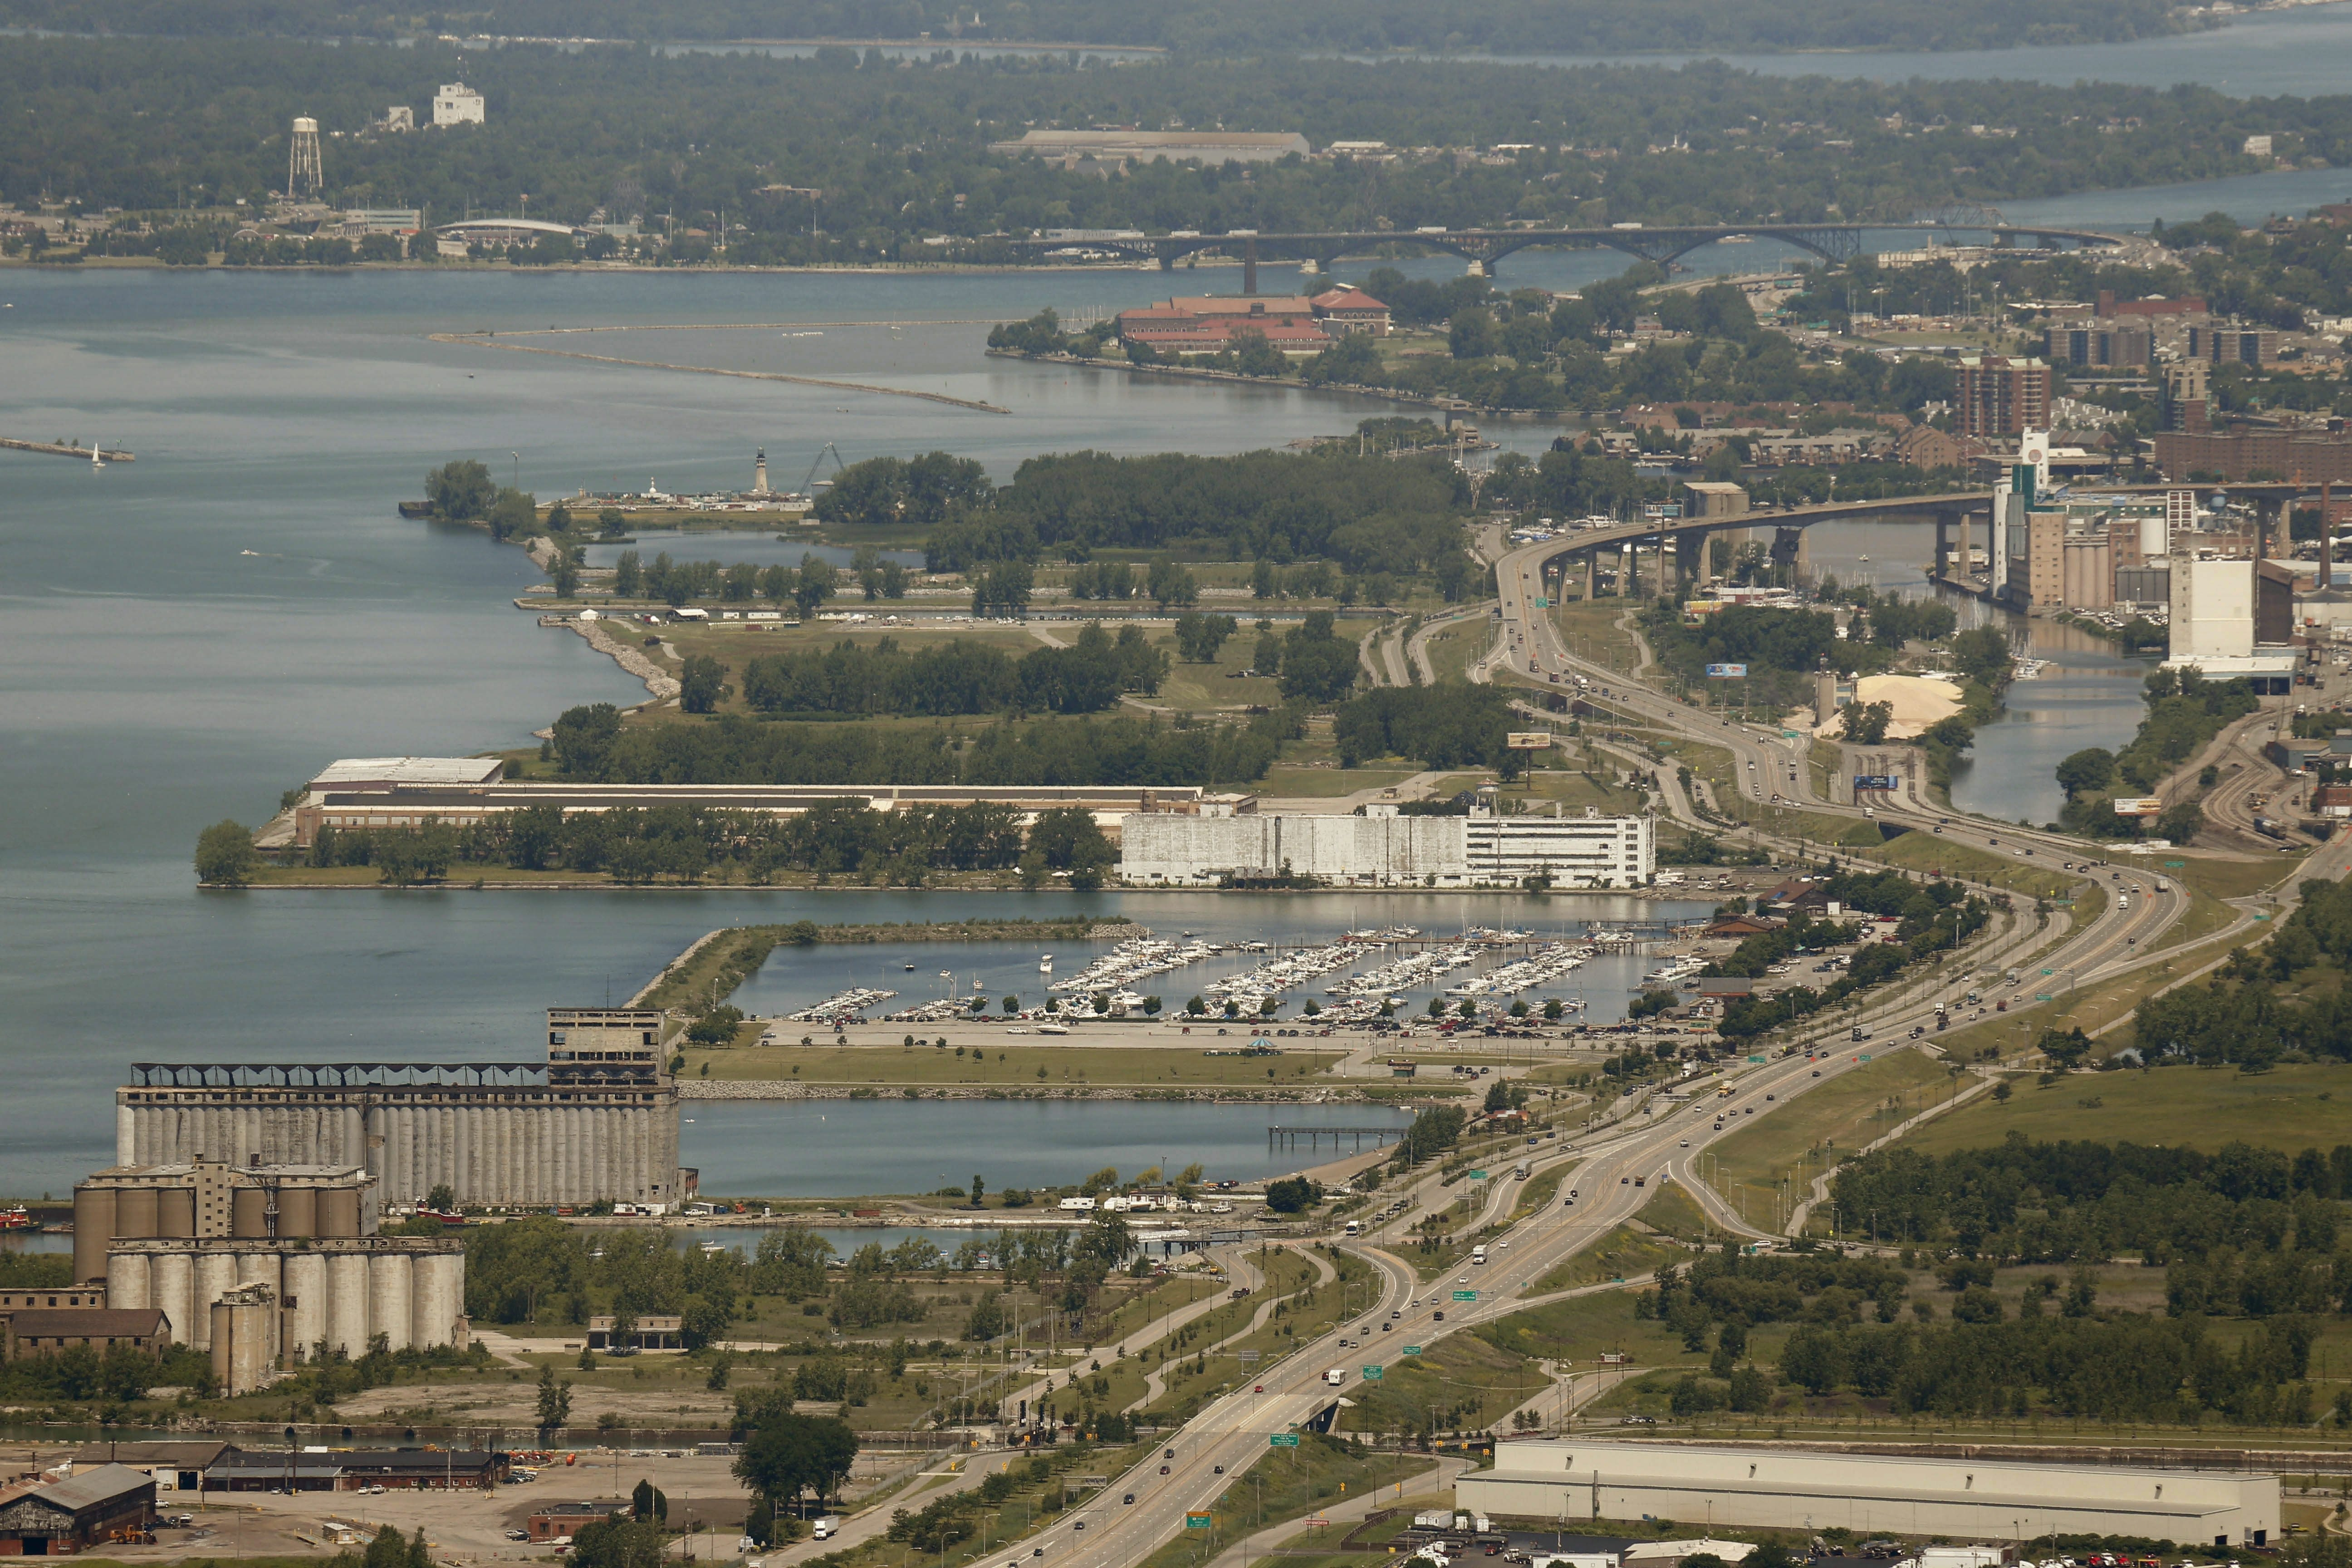 """""""Our goal is to make it a watercentric development that isn't industrial, but is consistent with the goal of an active and improved Buffalo waterfront,"""" Sam Hoyt, local president of Empire State Development, says of Outer Harbor property that NFTA will transfer to agency."""